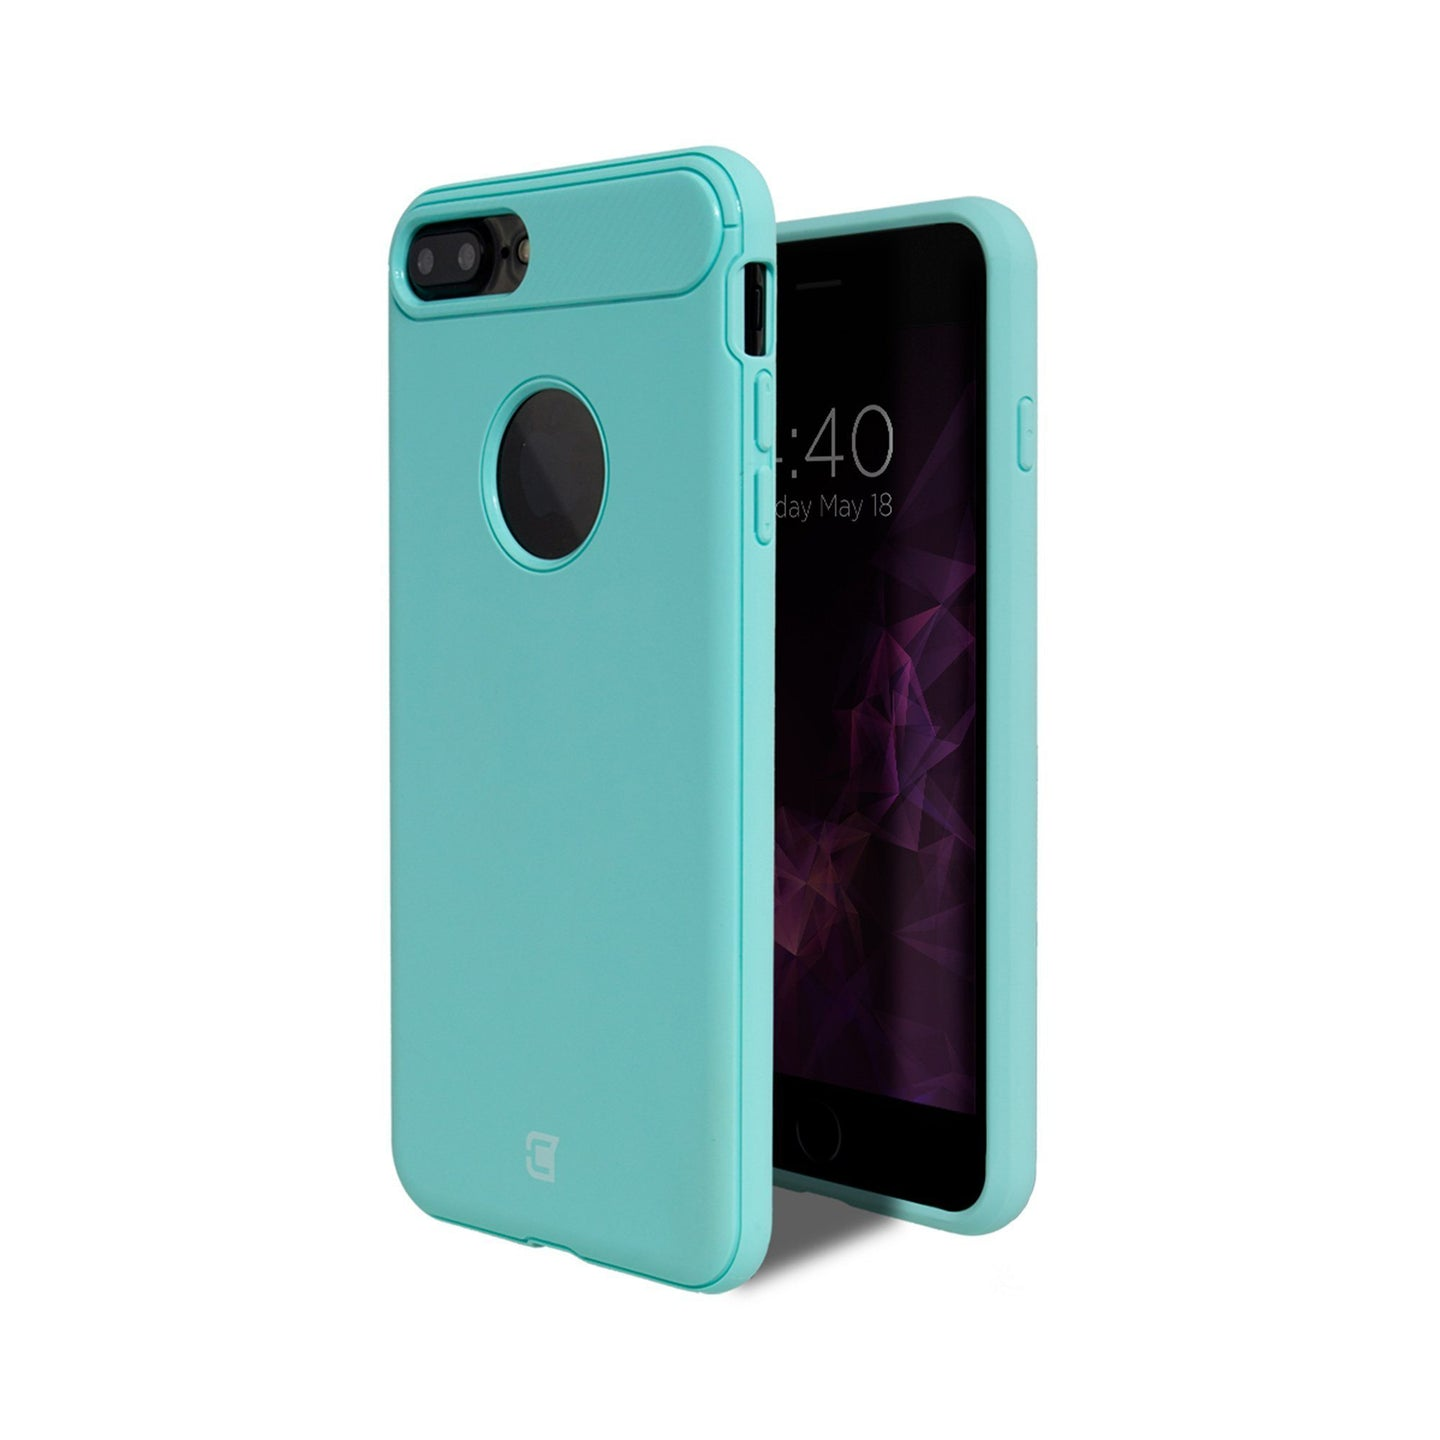 iPhone 7 / 8 - Skin Shield Case - Turquoise